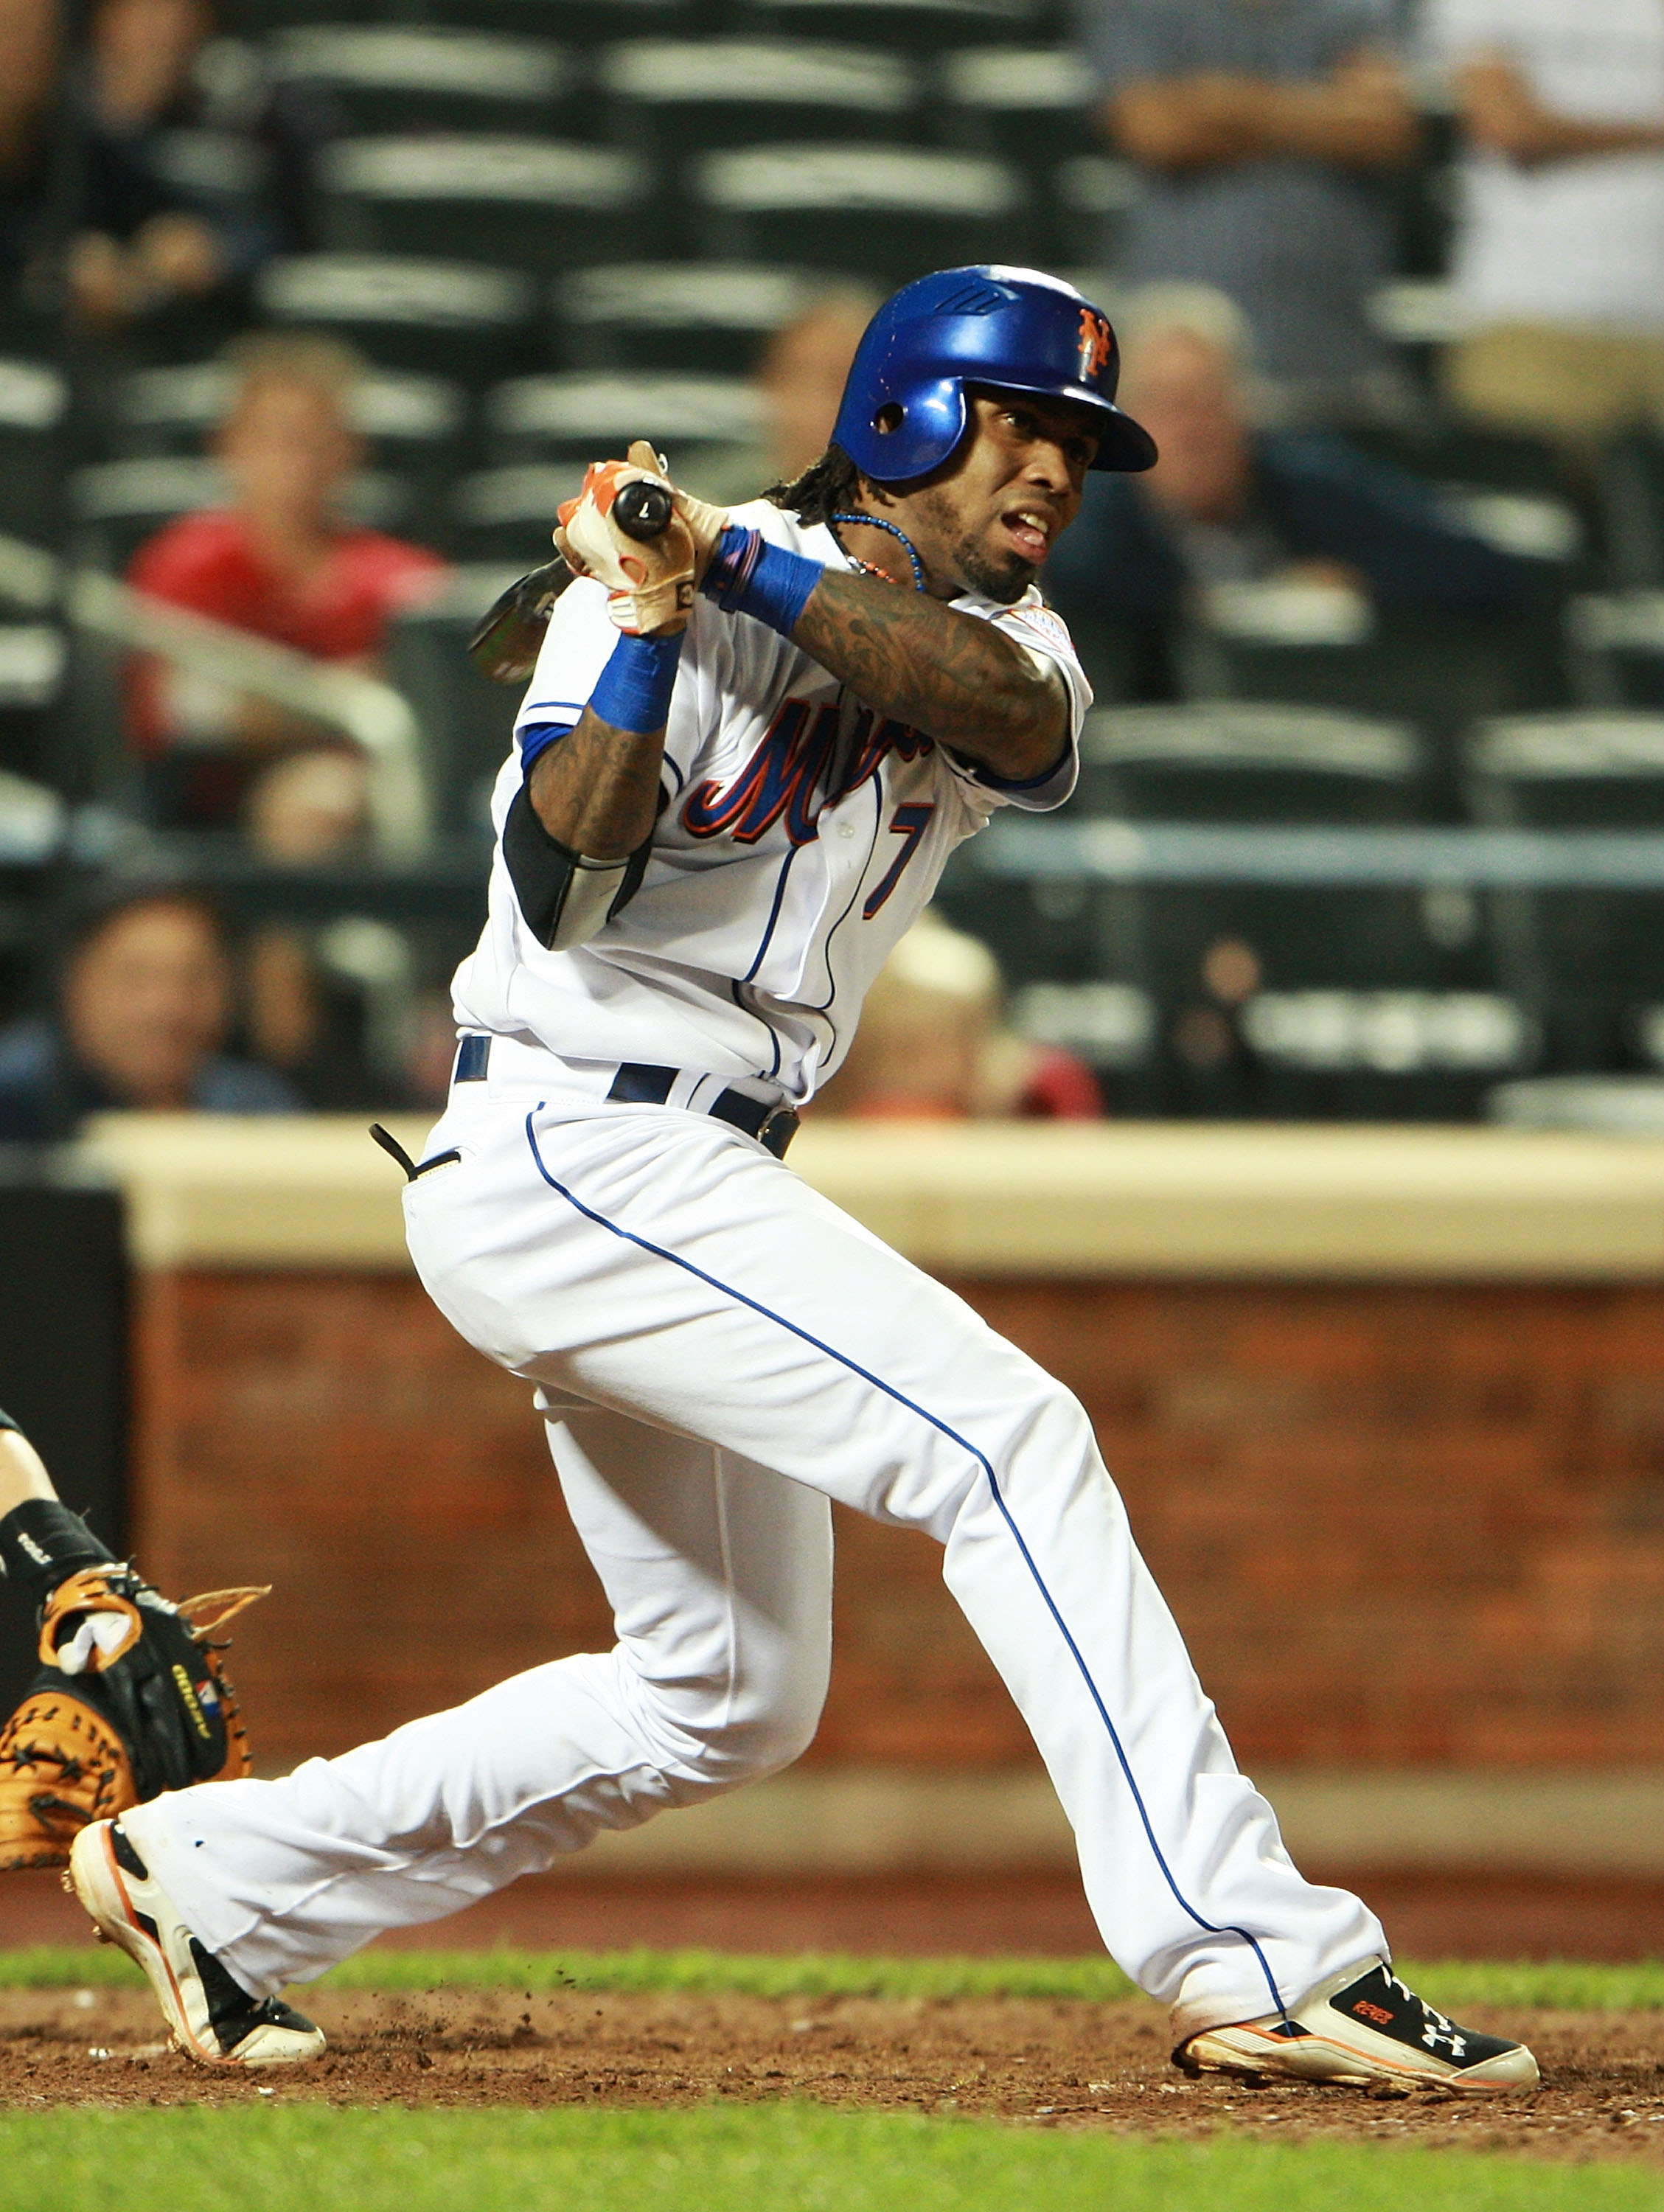 NEW YORK - AUGUST 25:  Jose Reyes #7 of the New York Mets ground out in the ninth inning against the Florida Marlins on August 25, 2010 at Citi Field in the Flushing neighborhood of the Queens borough of New York City.  (Photo by Andrew Burton/Getty Image